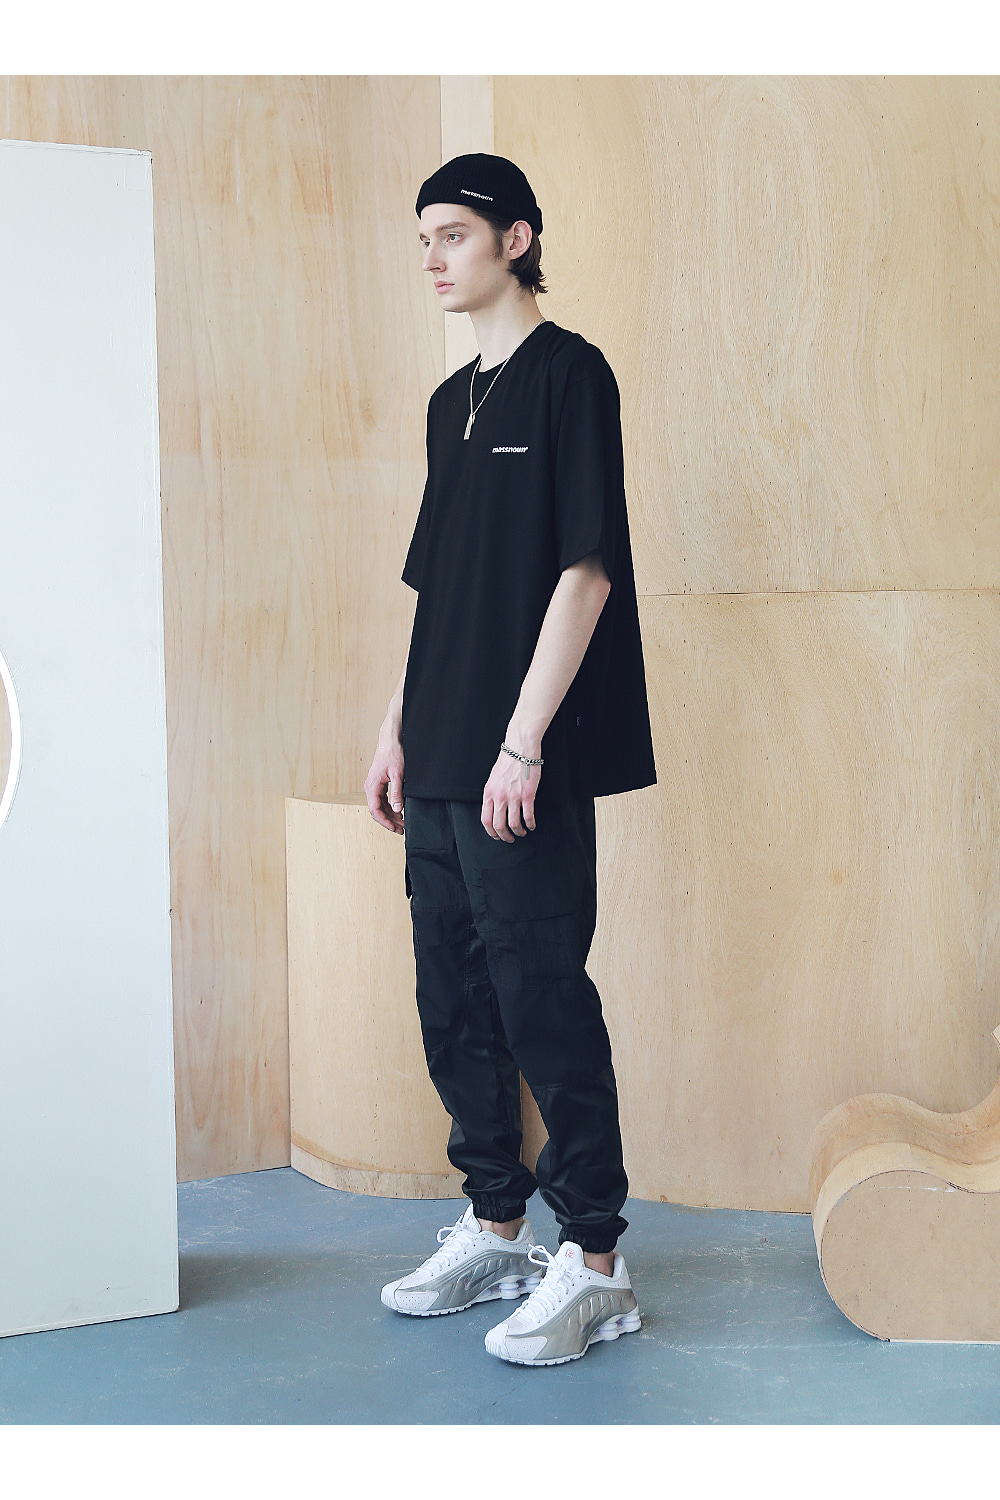 매스노운(MASSNOUN) HOT-LINE OVERSIZED T-SHIRTS MSNTS008-BK